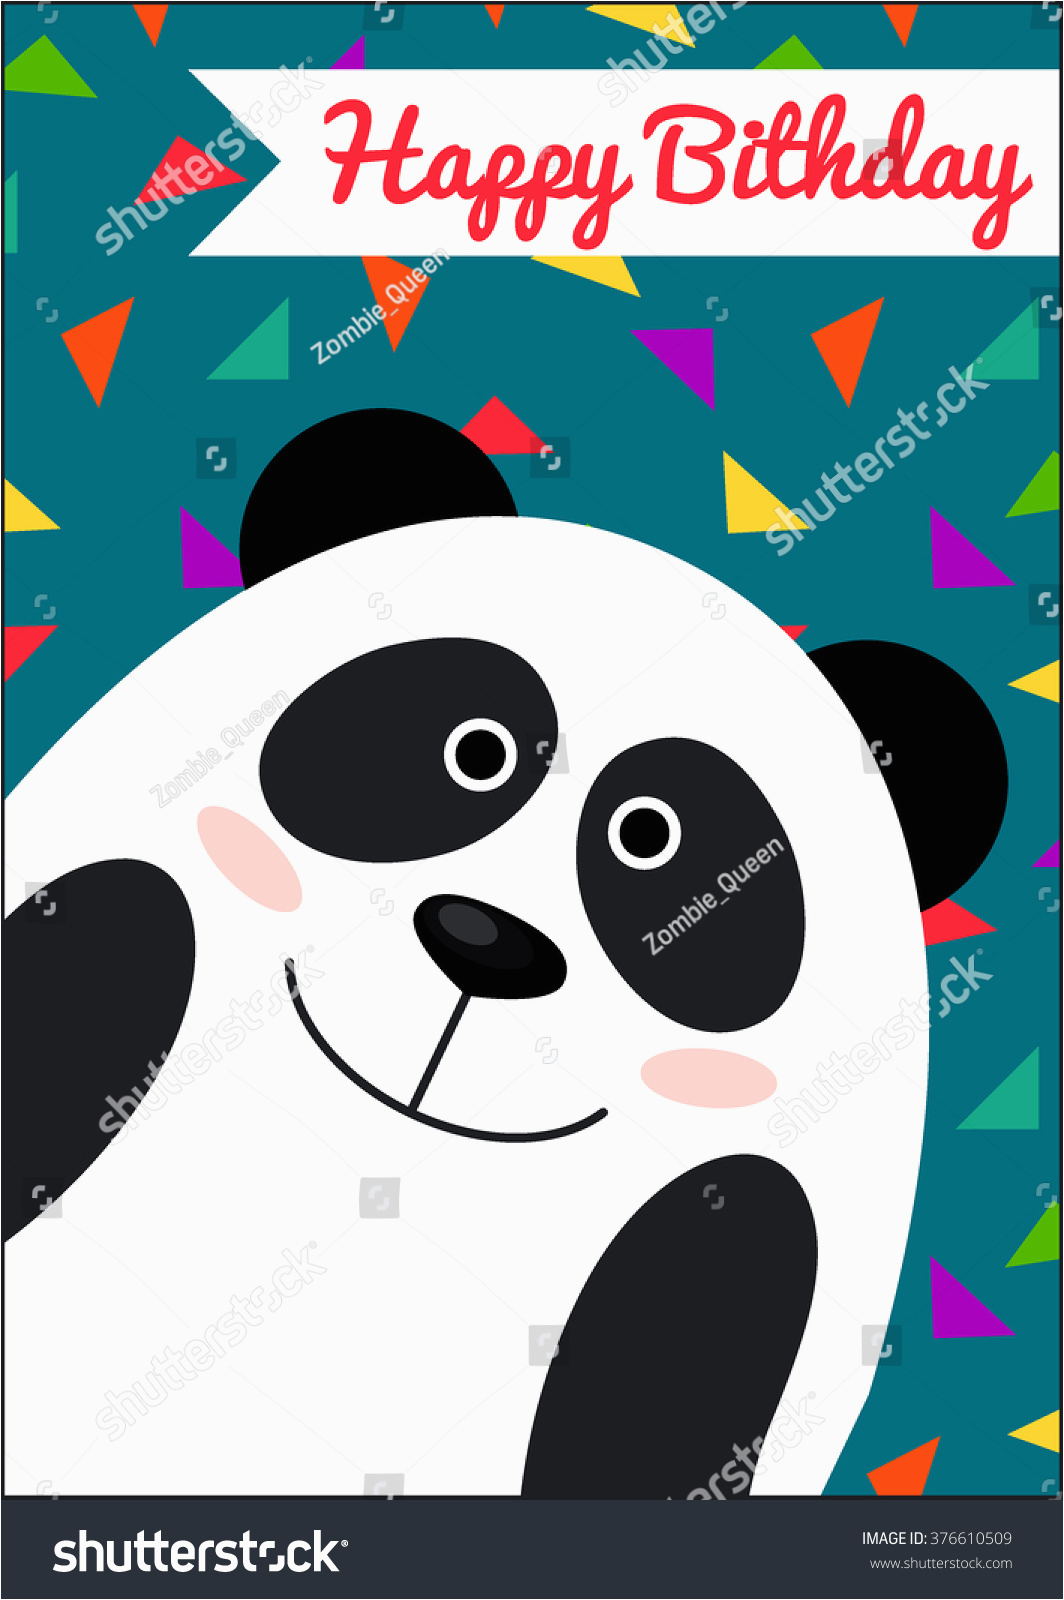 happy birthday card panda template 376610509